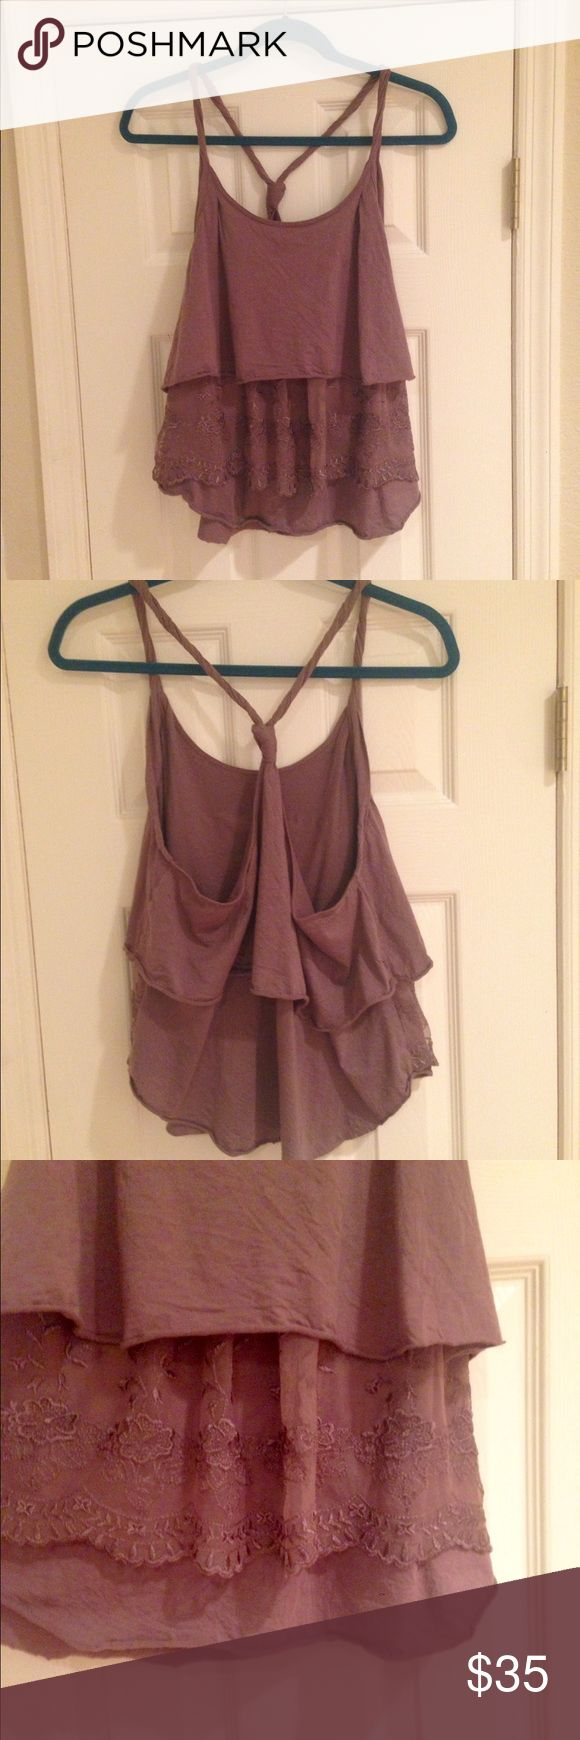 Free People brown top ❤️ Gorgeous Free People top! Gently worn only a few times and in great condition. Front has a detailed lacy layer; the back is pretty open... This top would look great with a lacy bandeau bralette and jeans! Free People Tops